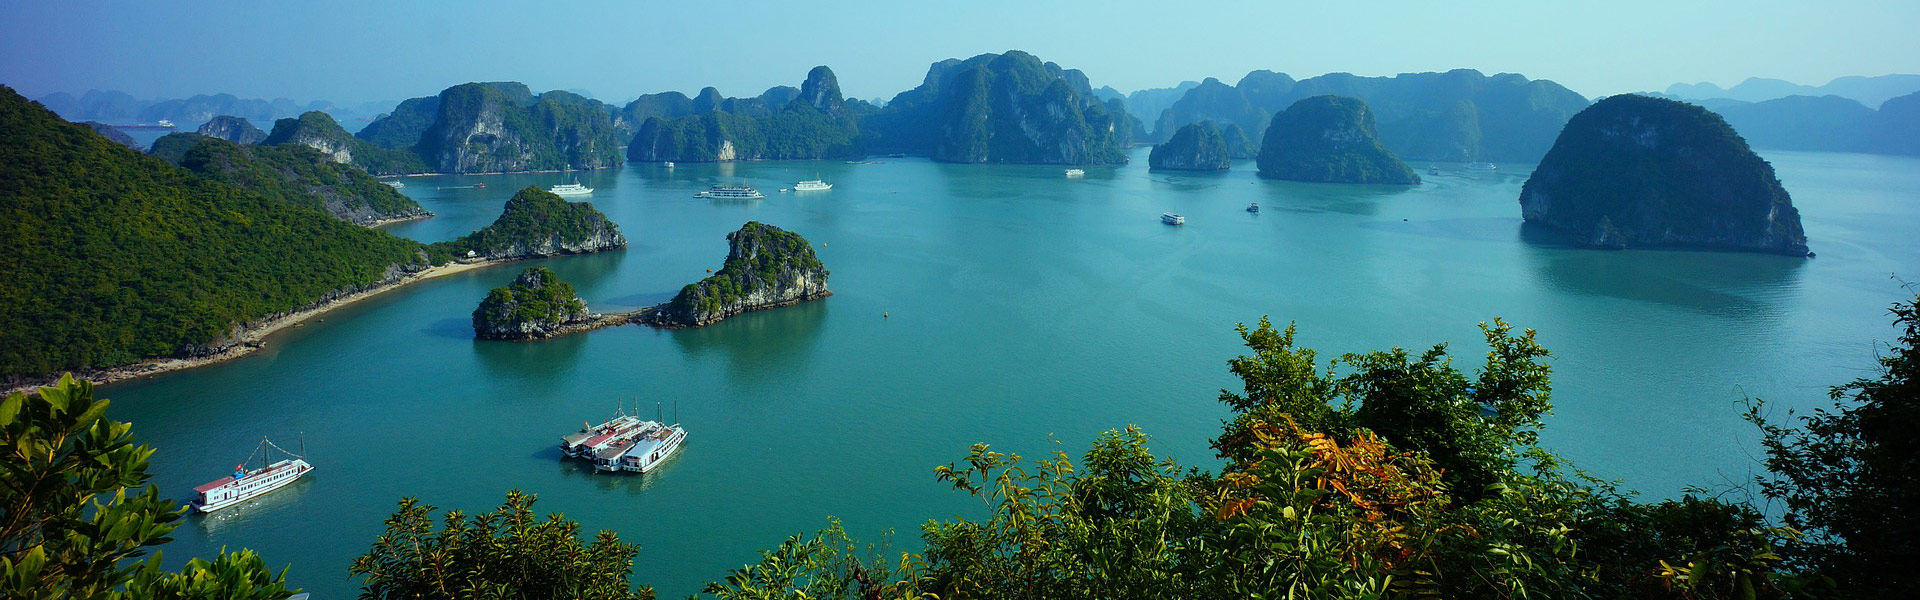 Scenic Places To Visit In Vietnam | Wendy Wu Tours Blog